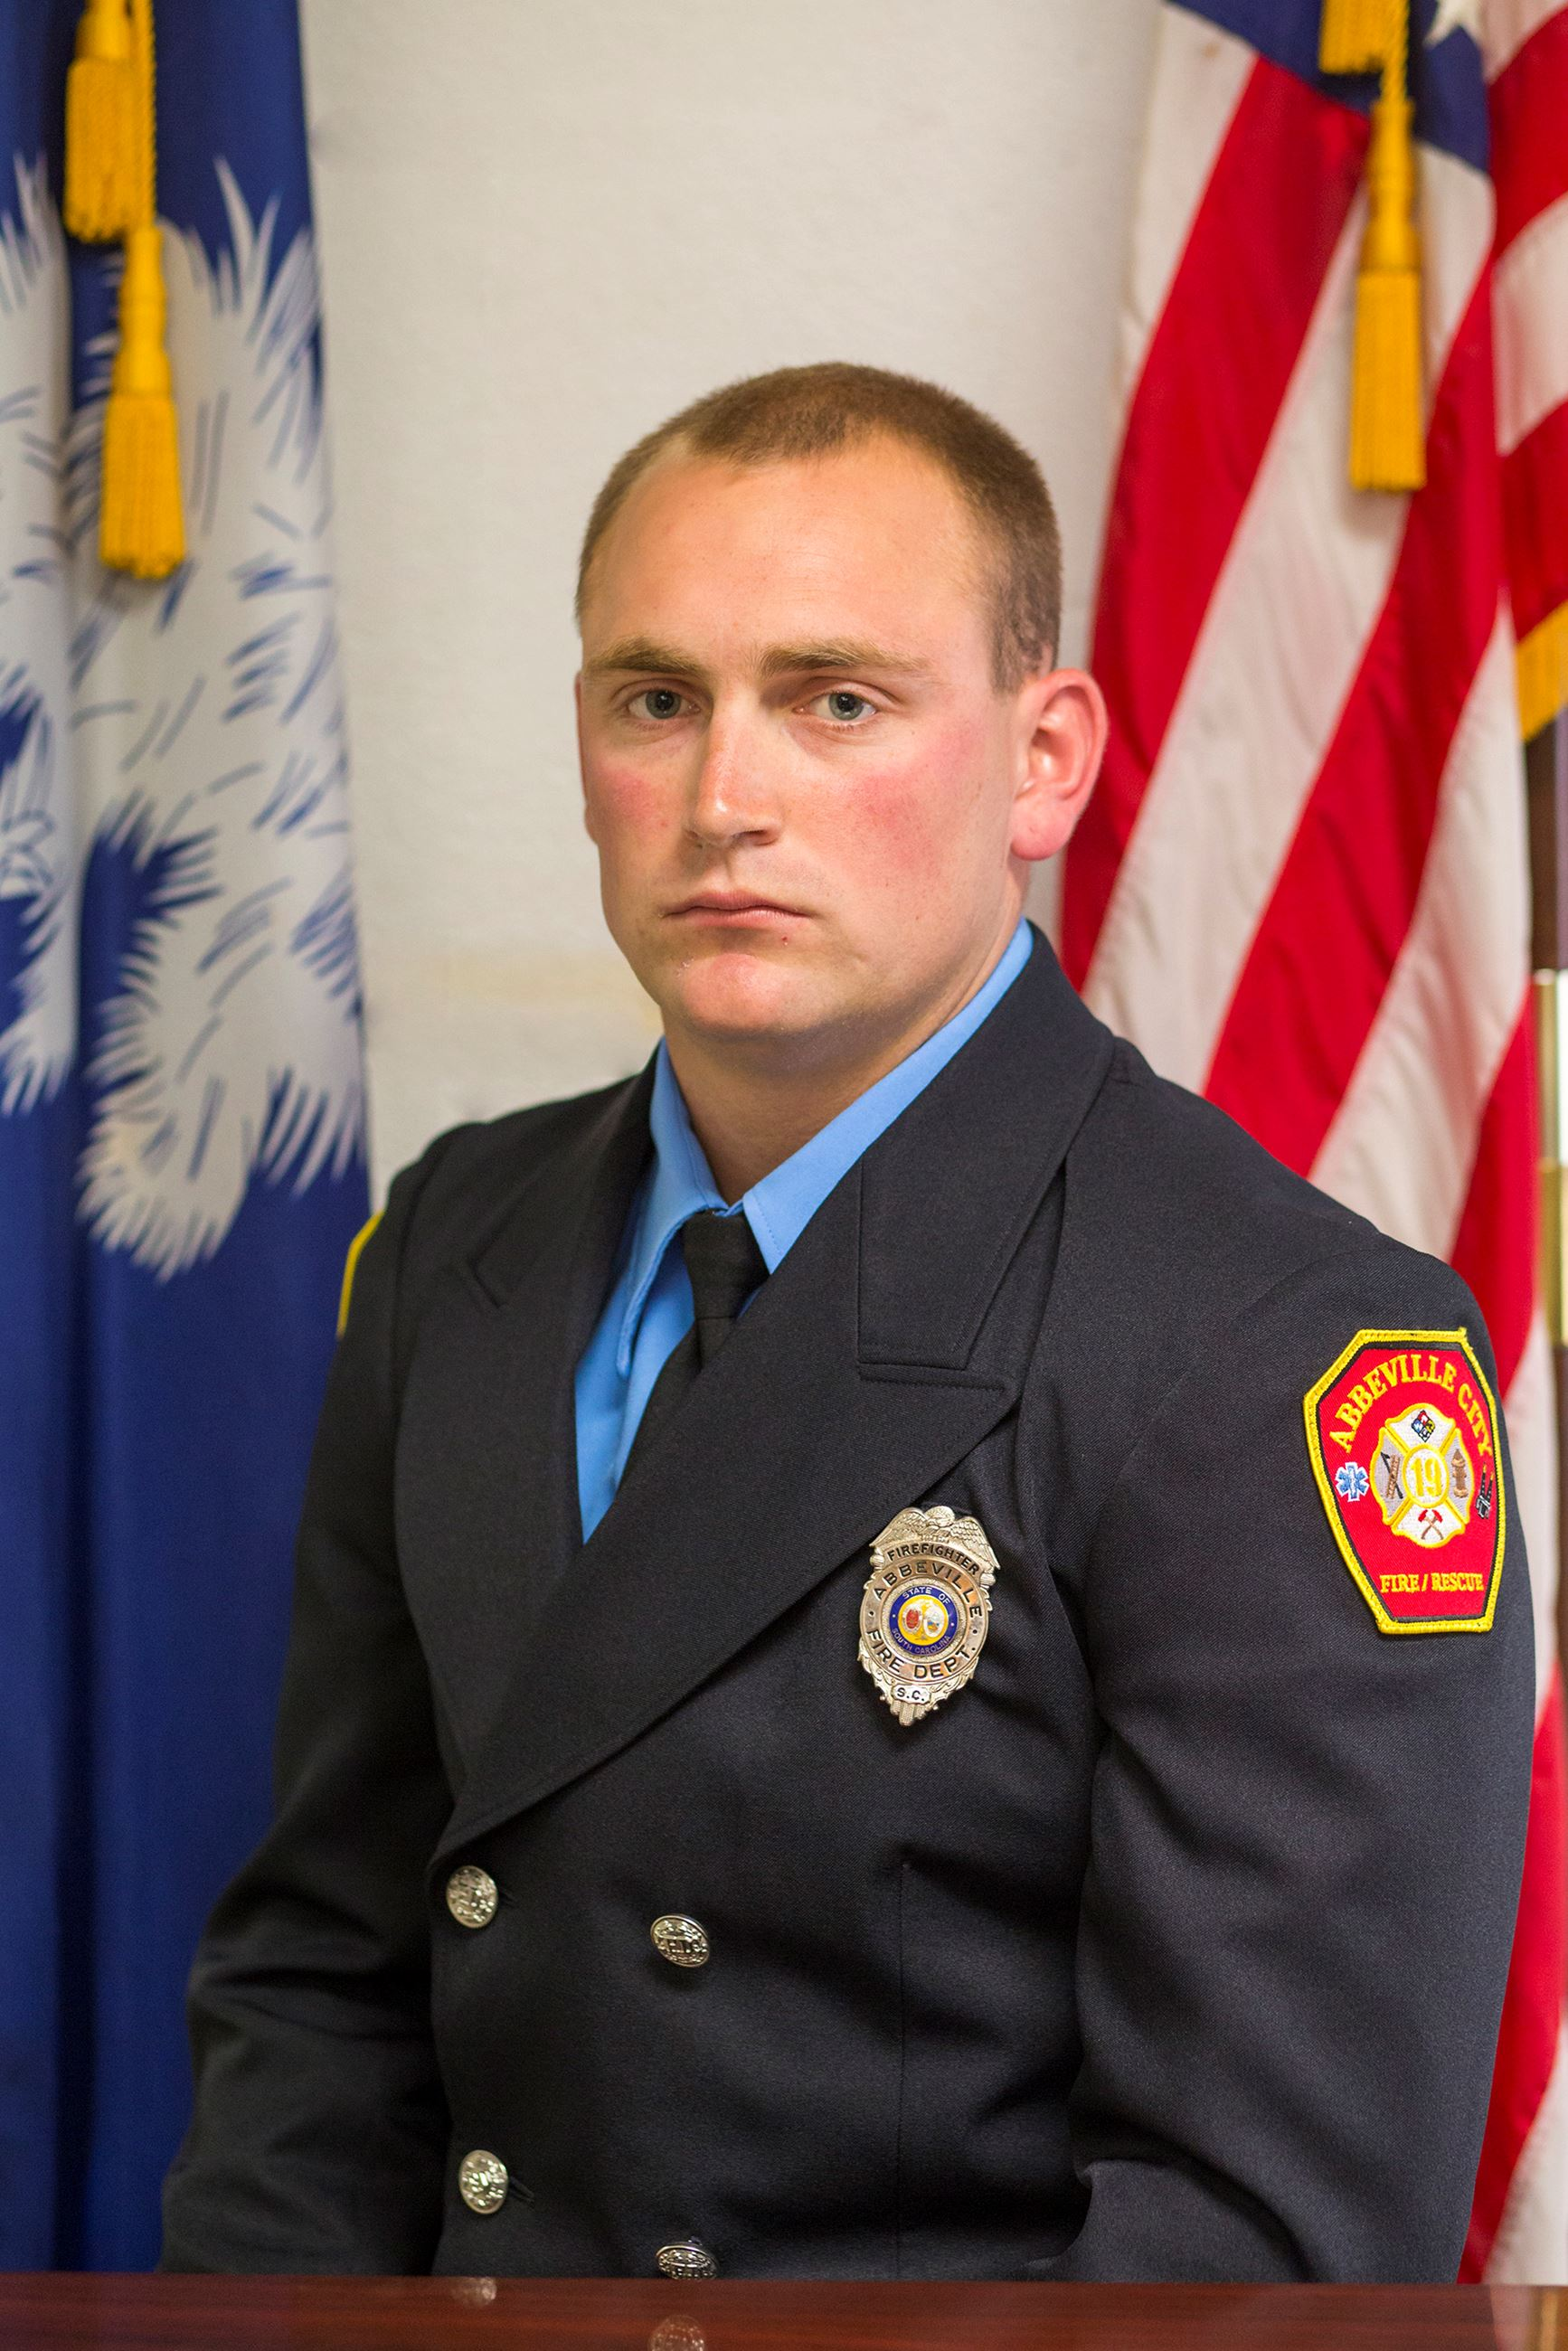 Senior Firefighter D.K Saylors